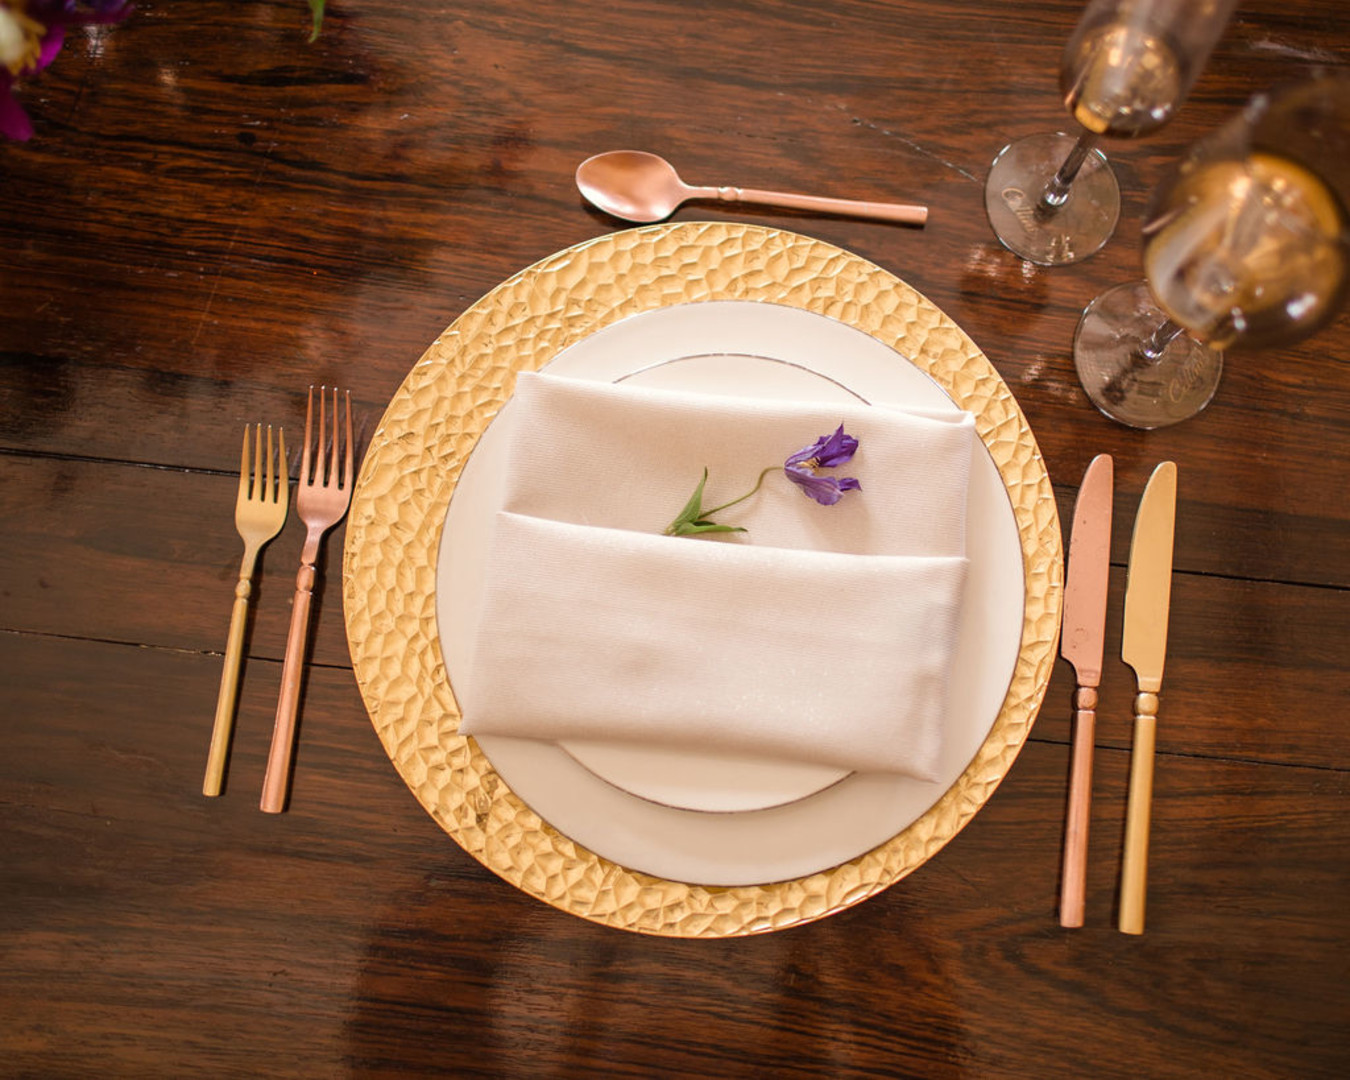 Gold wedding place settings: Bohemian wedding inspiration captured by Truly Sublime Photography. See more boho wedding ideas on CHItheeWED.com!